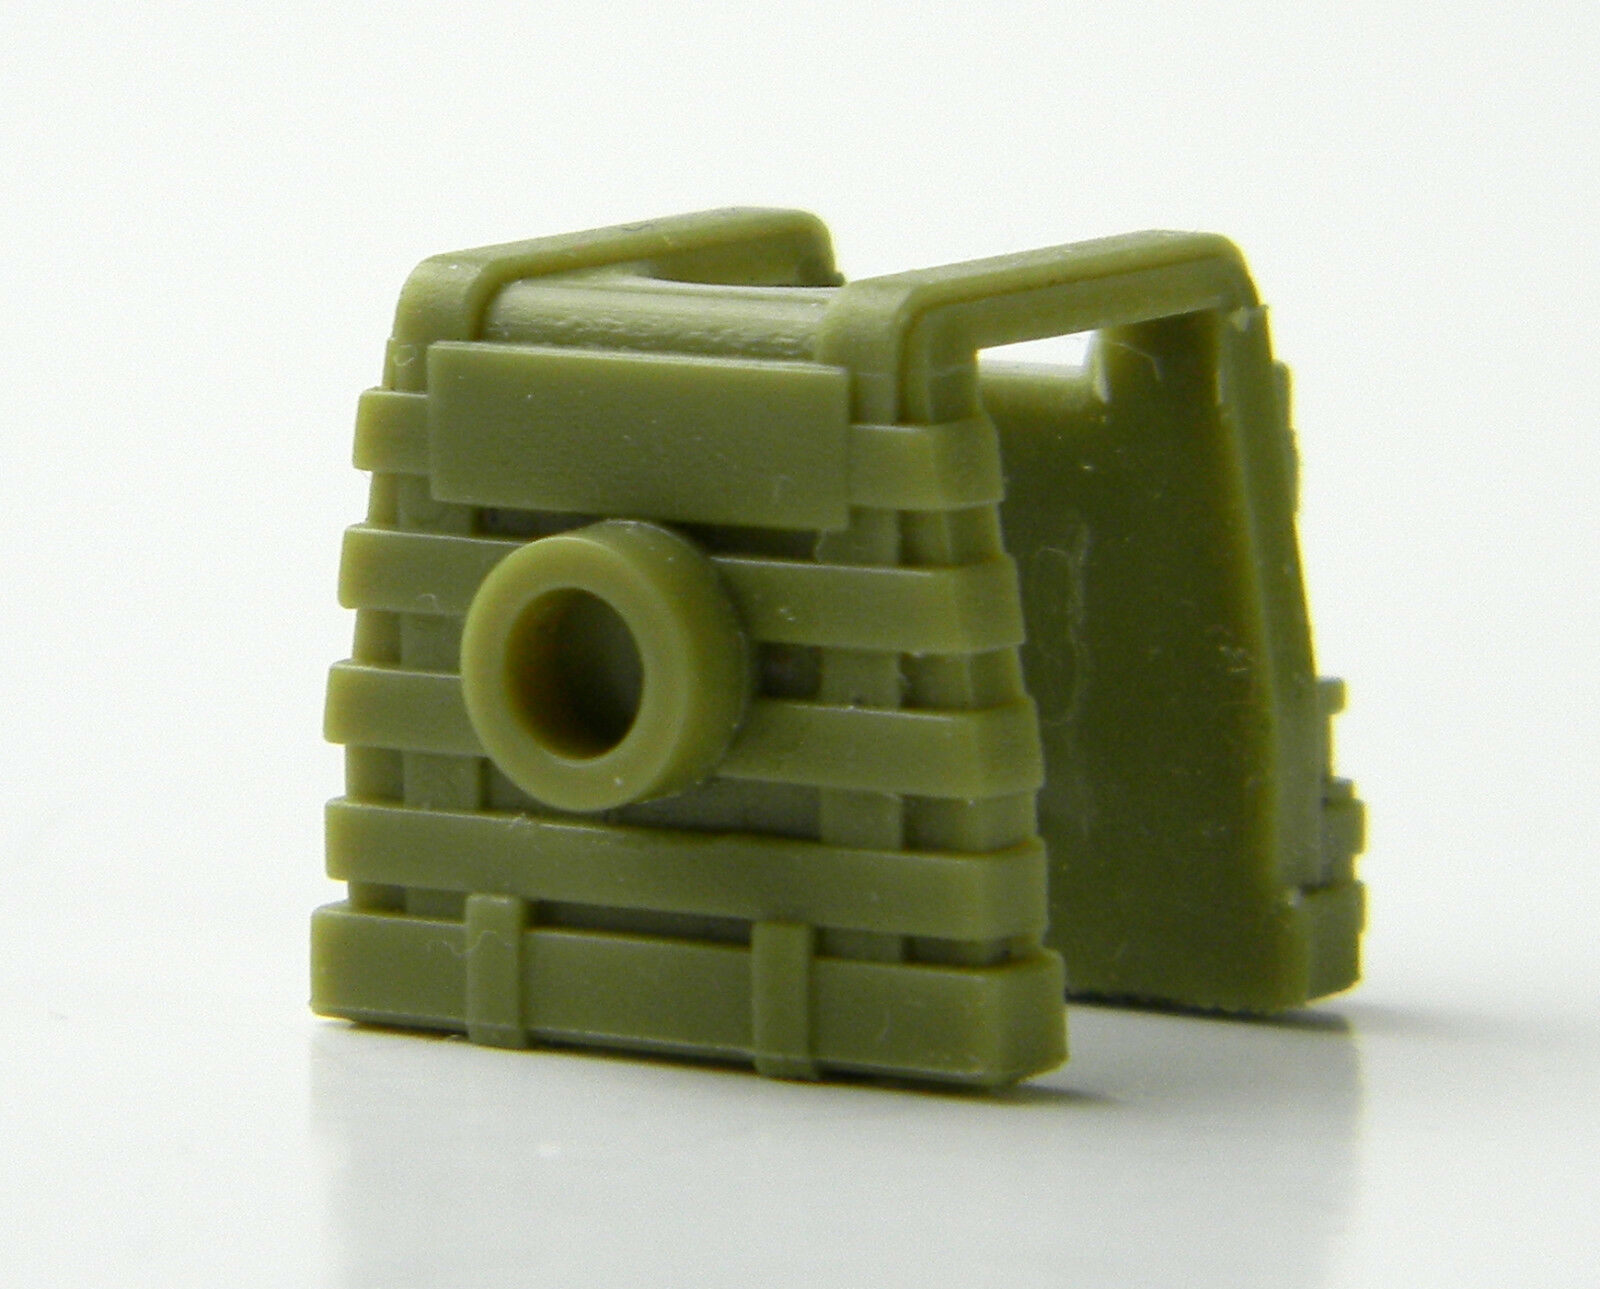 Tactical Vest Compatible with toy brick minifigures SWAT W115 Light Olive P1